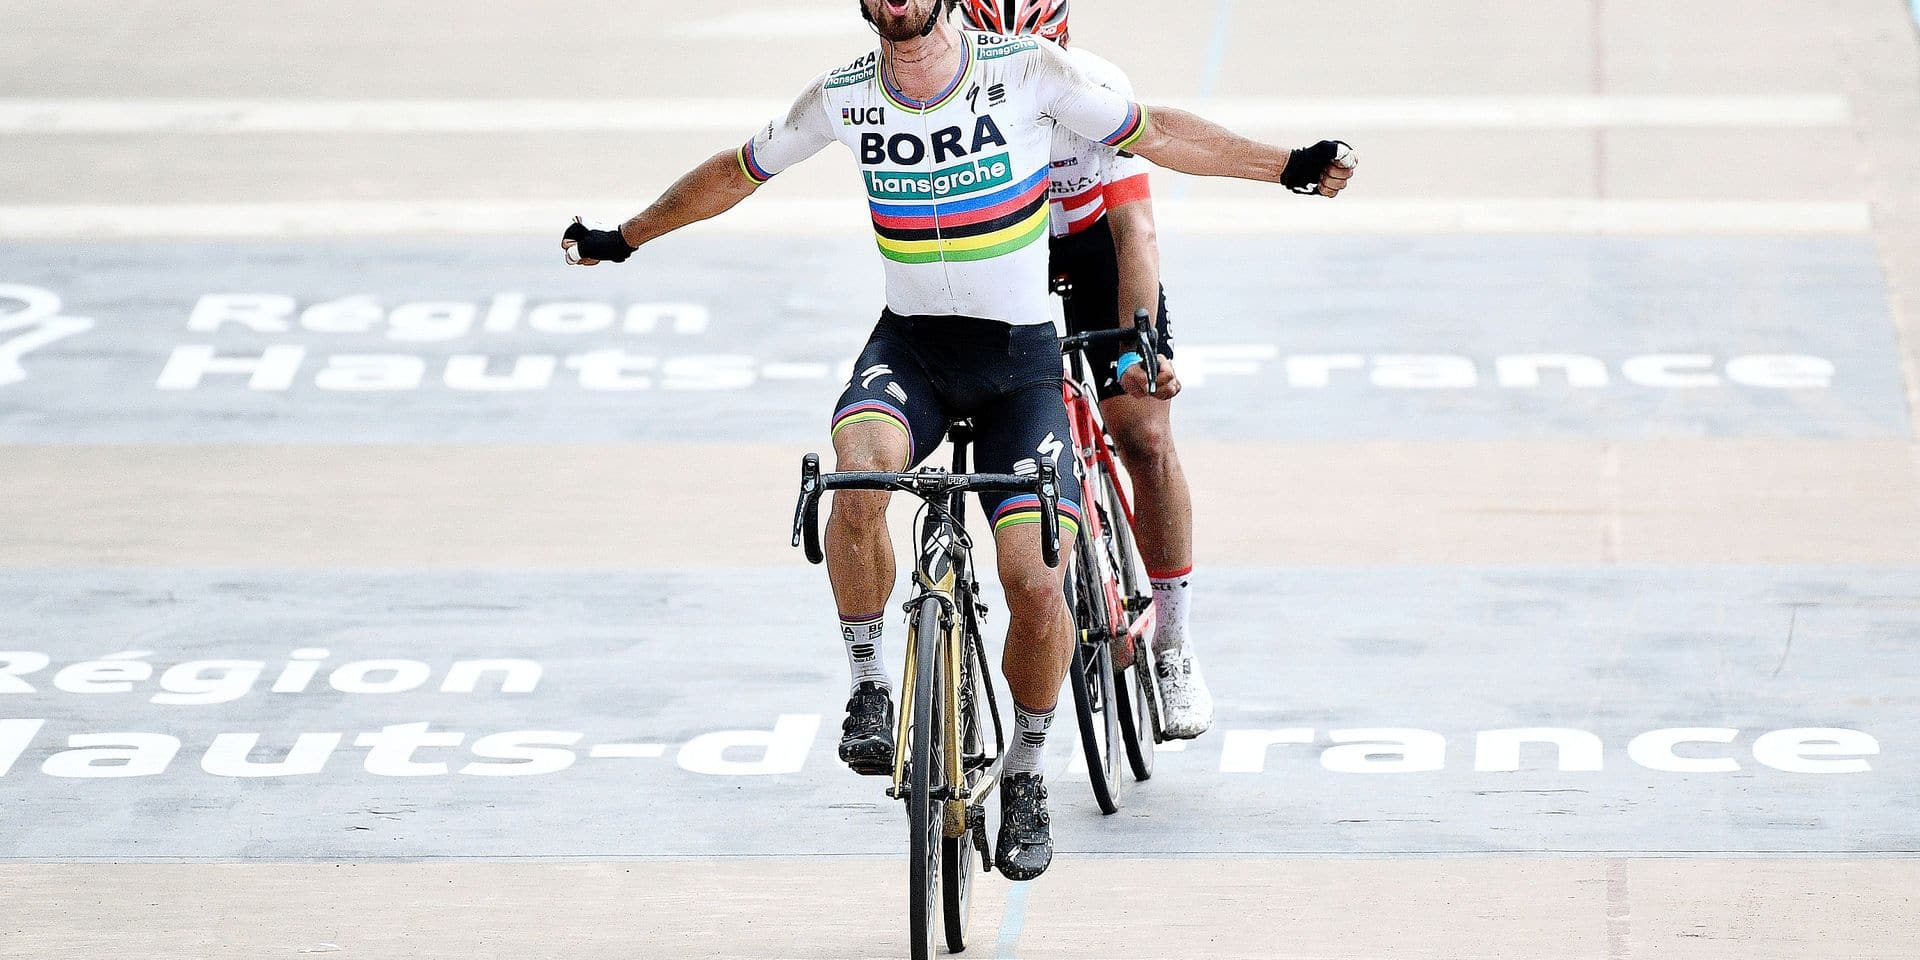 Slovakian Peter Sagan of Bora-Hansgrohe (front) celebrates as he wins before Swiss Silvan Dillier of AG2R La Mondiale (rear) the sprint at the finish of the 116th edition of the 'Paris-Roubaix' one day cycling race, from Compiegne, near Paris to Roubaix. BELGA PHOTO YORICK JANSENS